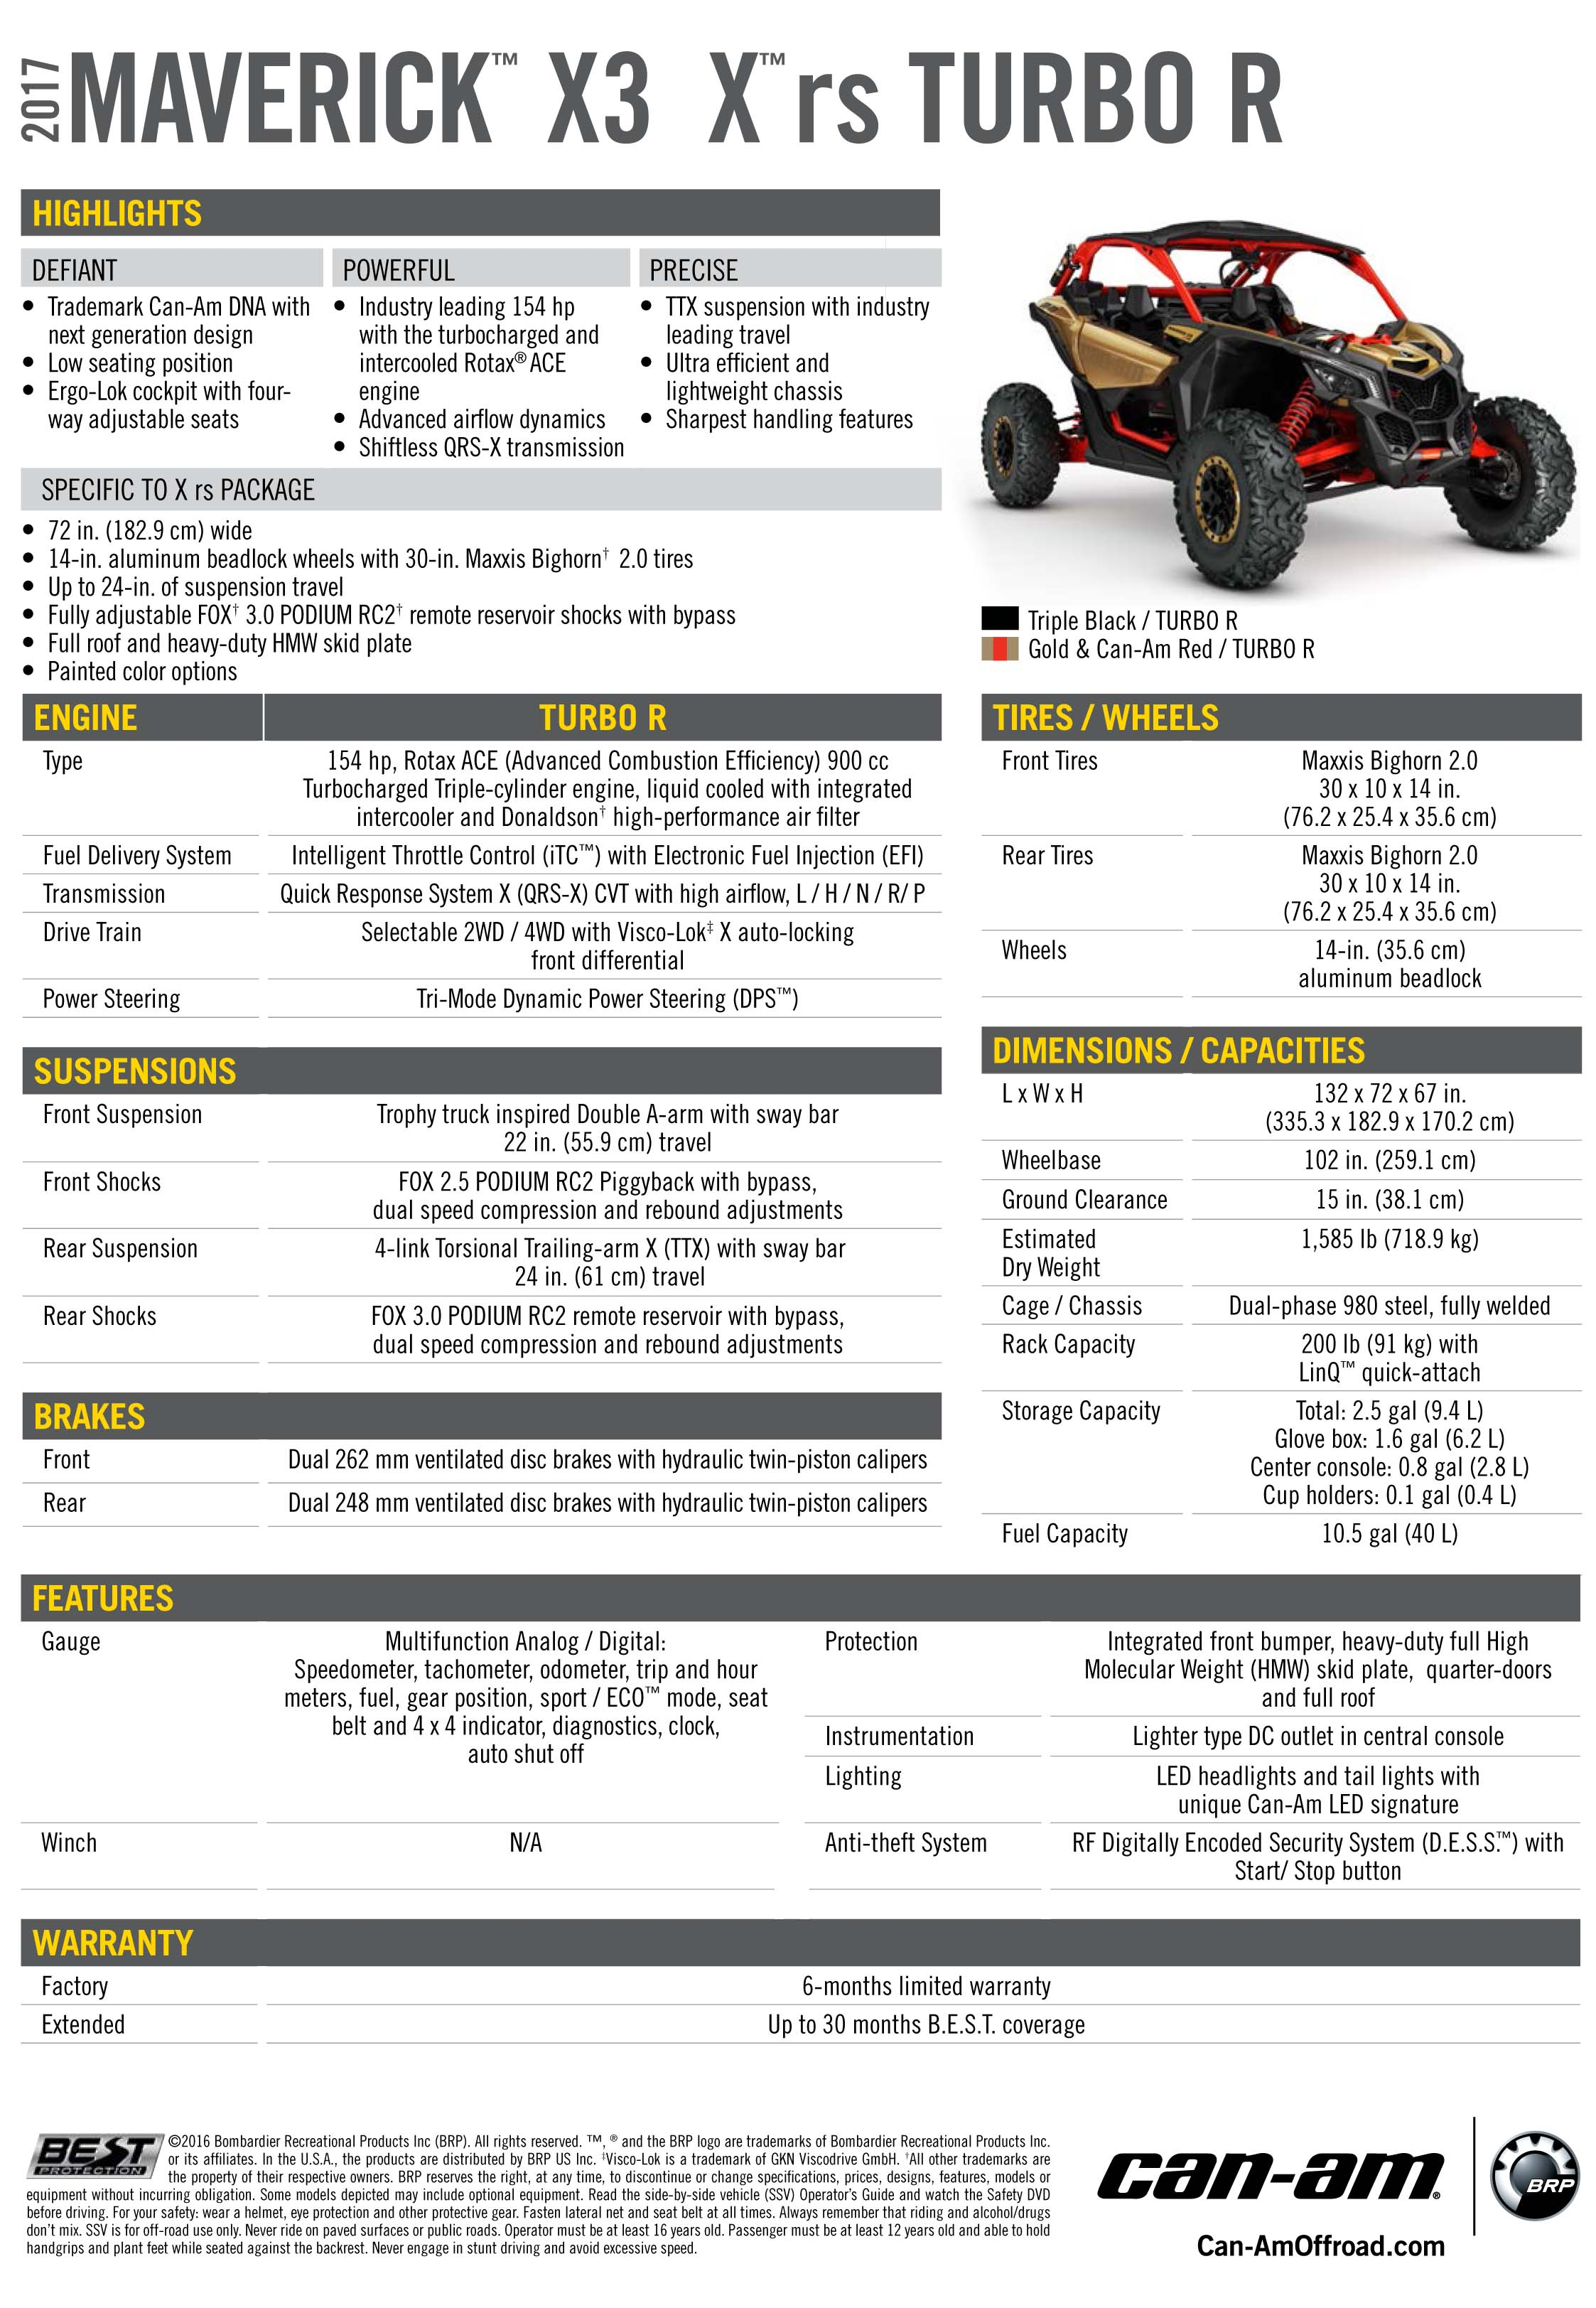 Maverick X3 X rs Specifications